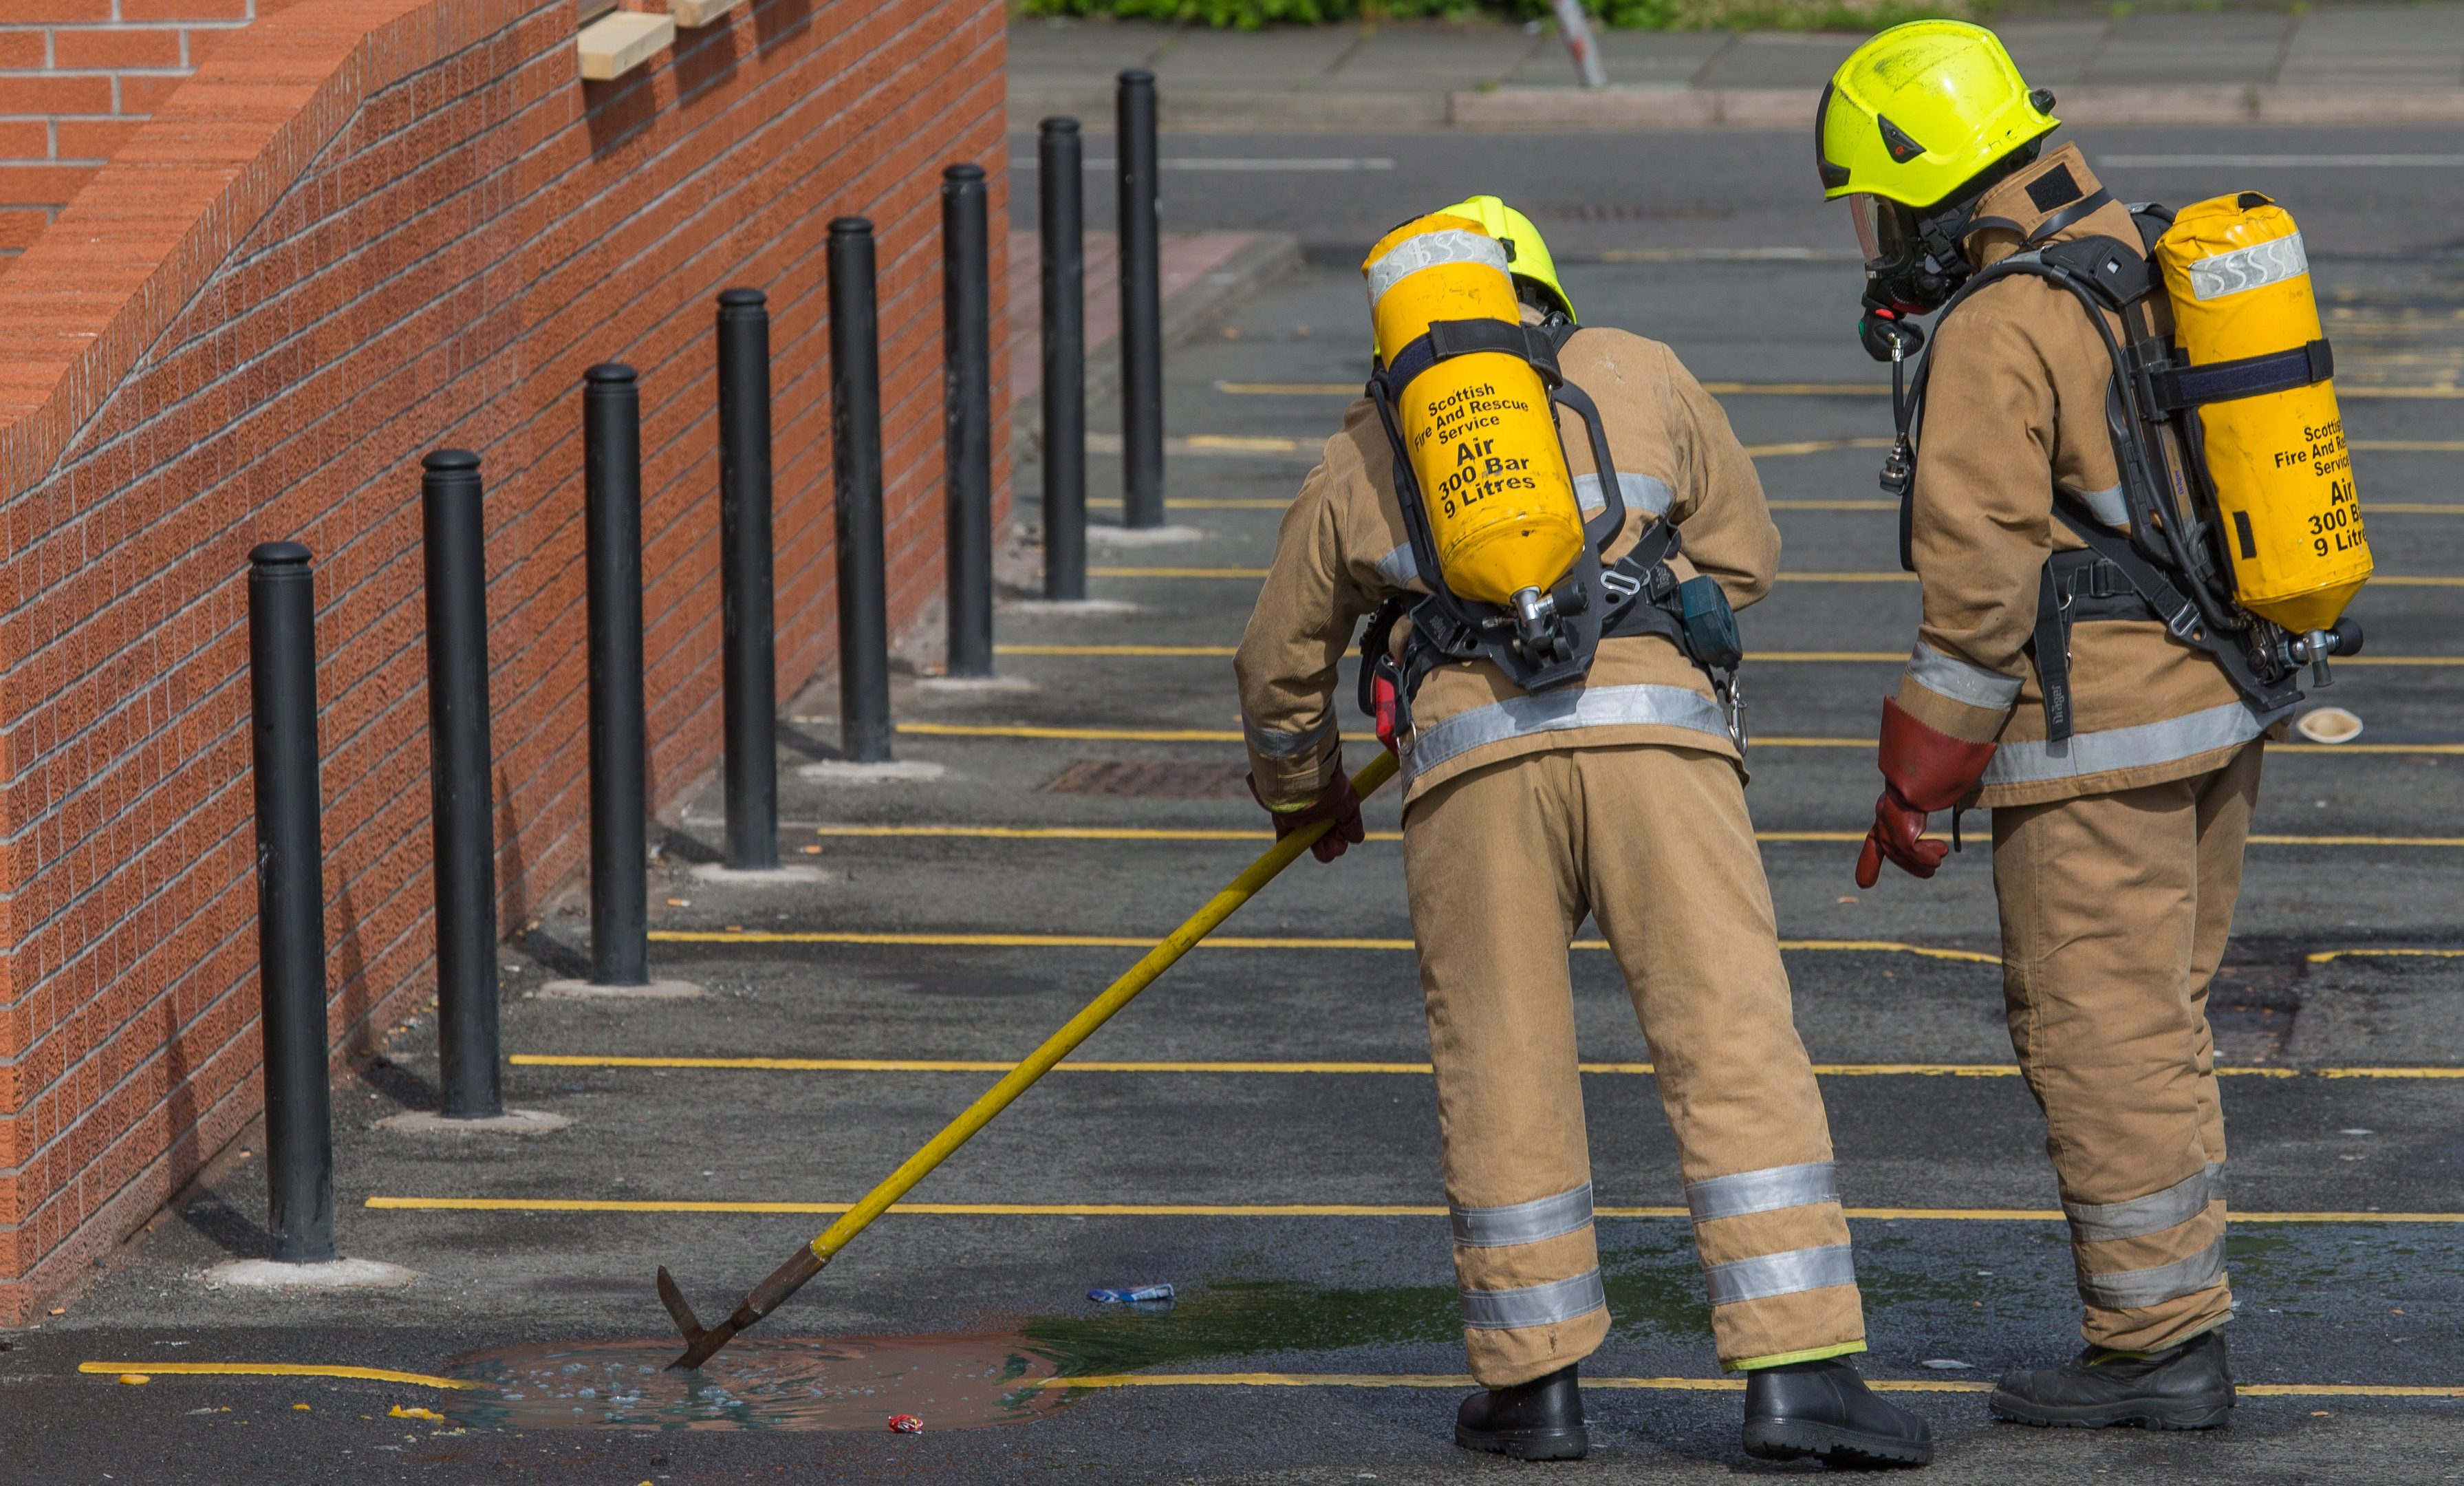 A suspected chemical incident resulted in a massive turnout of the emergency services to attend Glenrothes Bus Station on Wednesday evening.